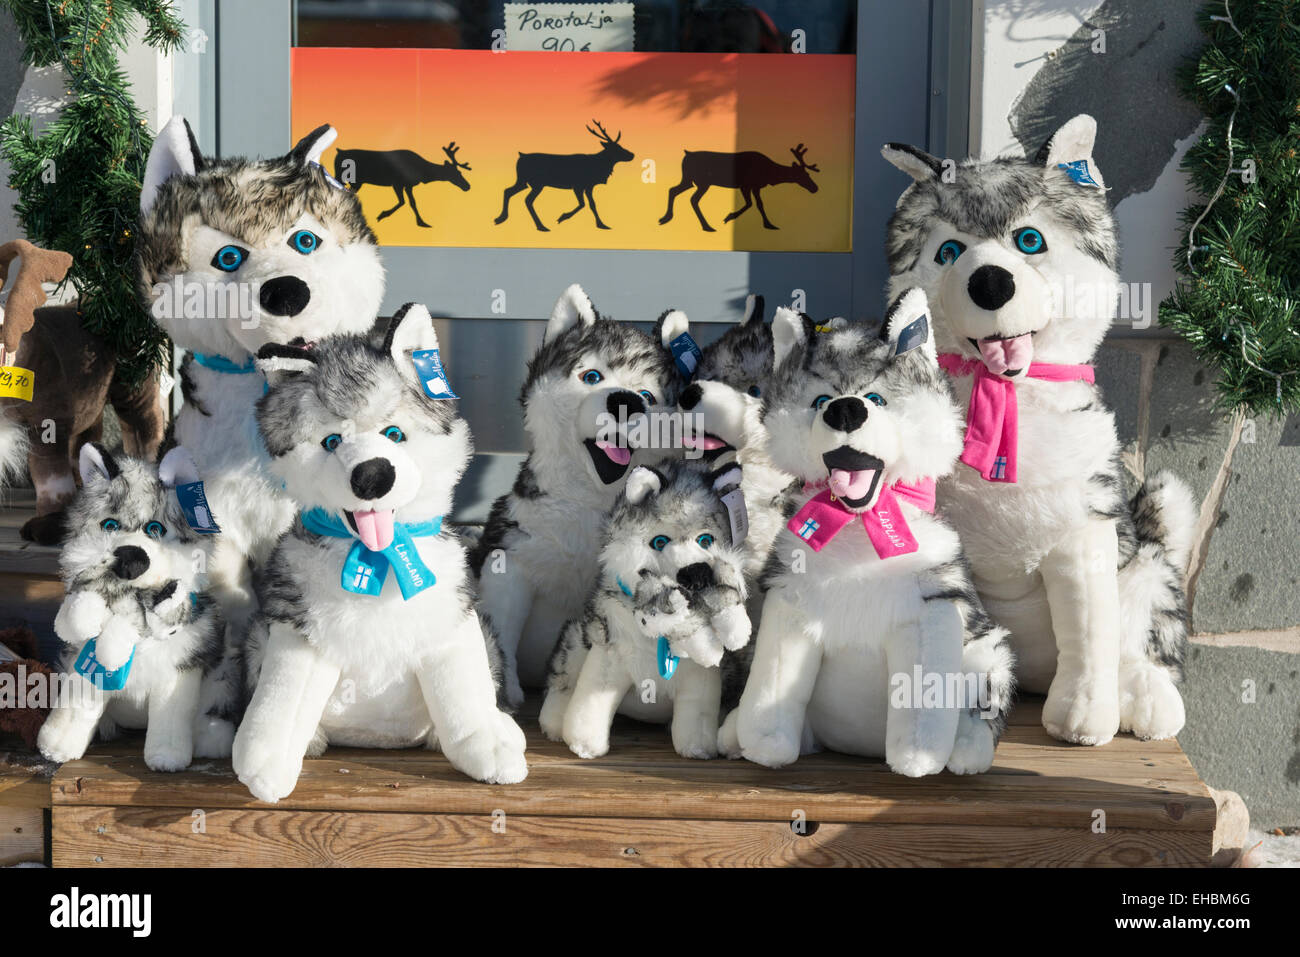 Toy husky dogs for sale in a souvenir and gift shop in Levi Lapland Finland - Stock Image